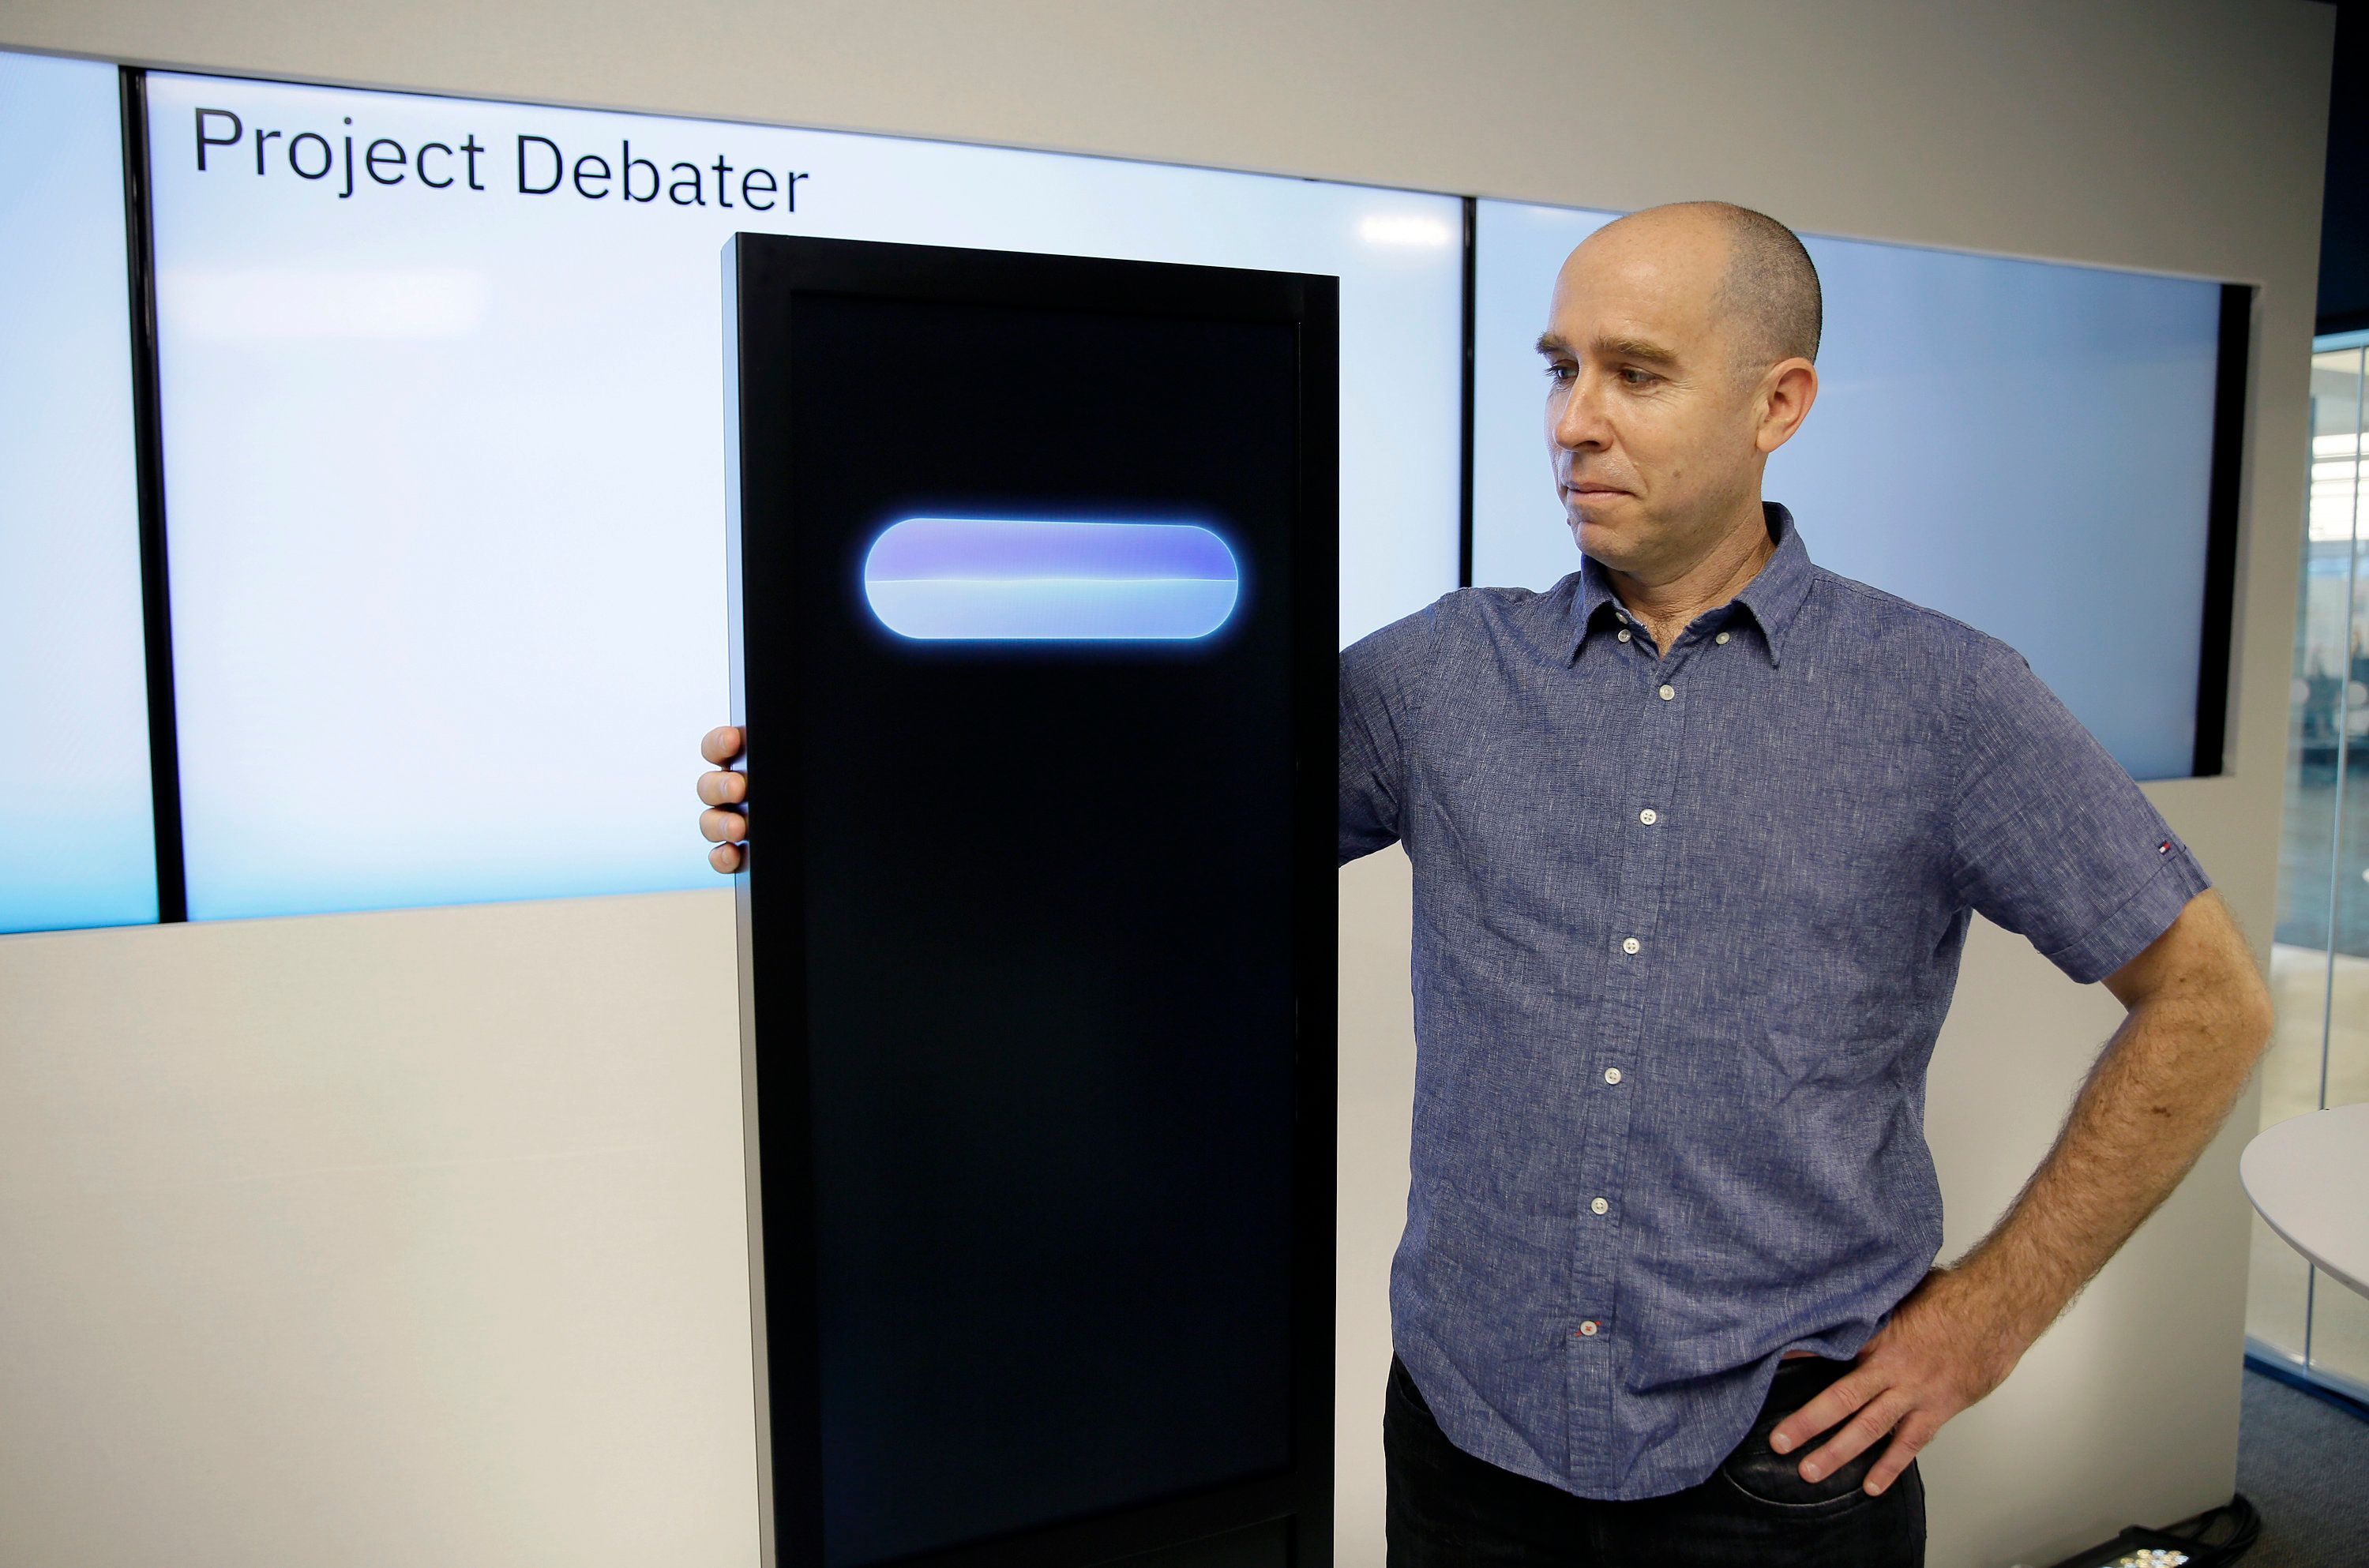 A Human And A Computer Held A Live Debate And The Human Didn't